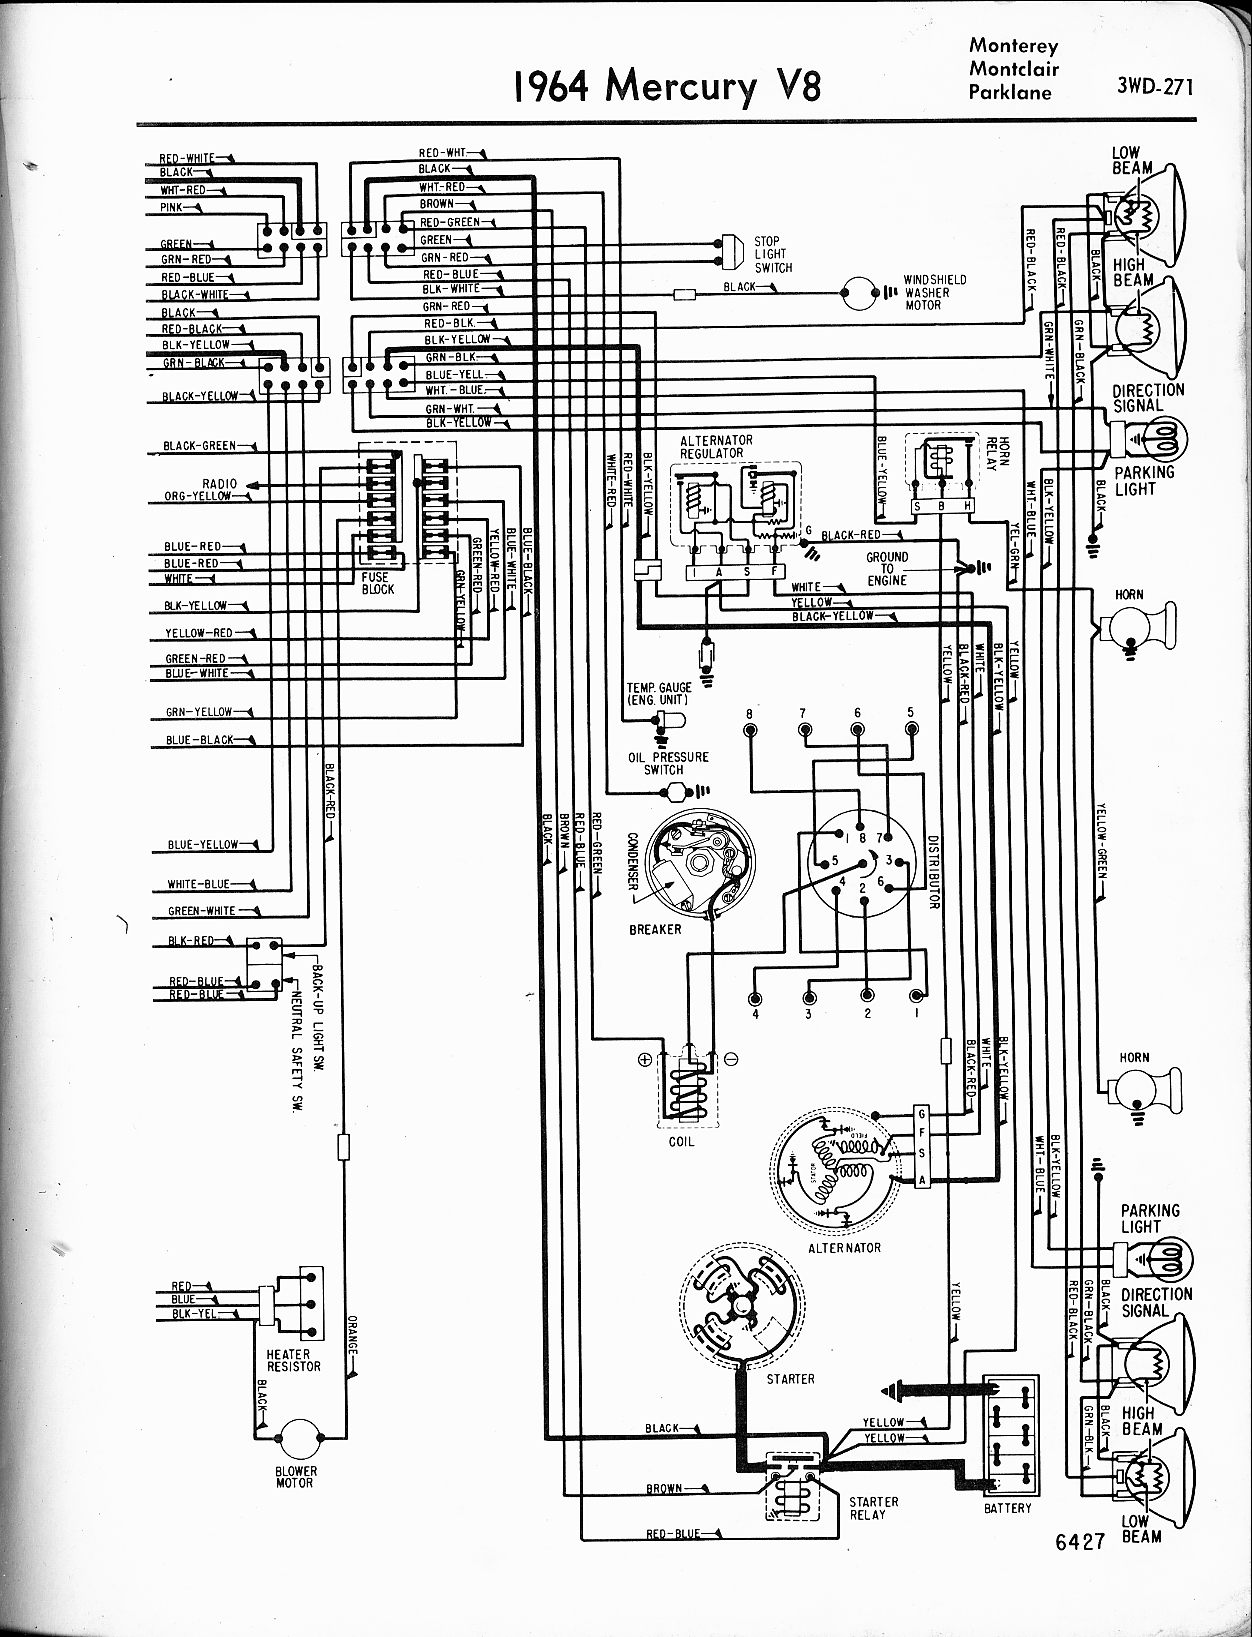 DIAGRAM] 74 Mercury Comet Wiring Diagram FULL Version HD Quality Wiring  Diagram - TYPEJLWIRING.LEDICKENS.FRWiring And Fuse Database